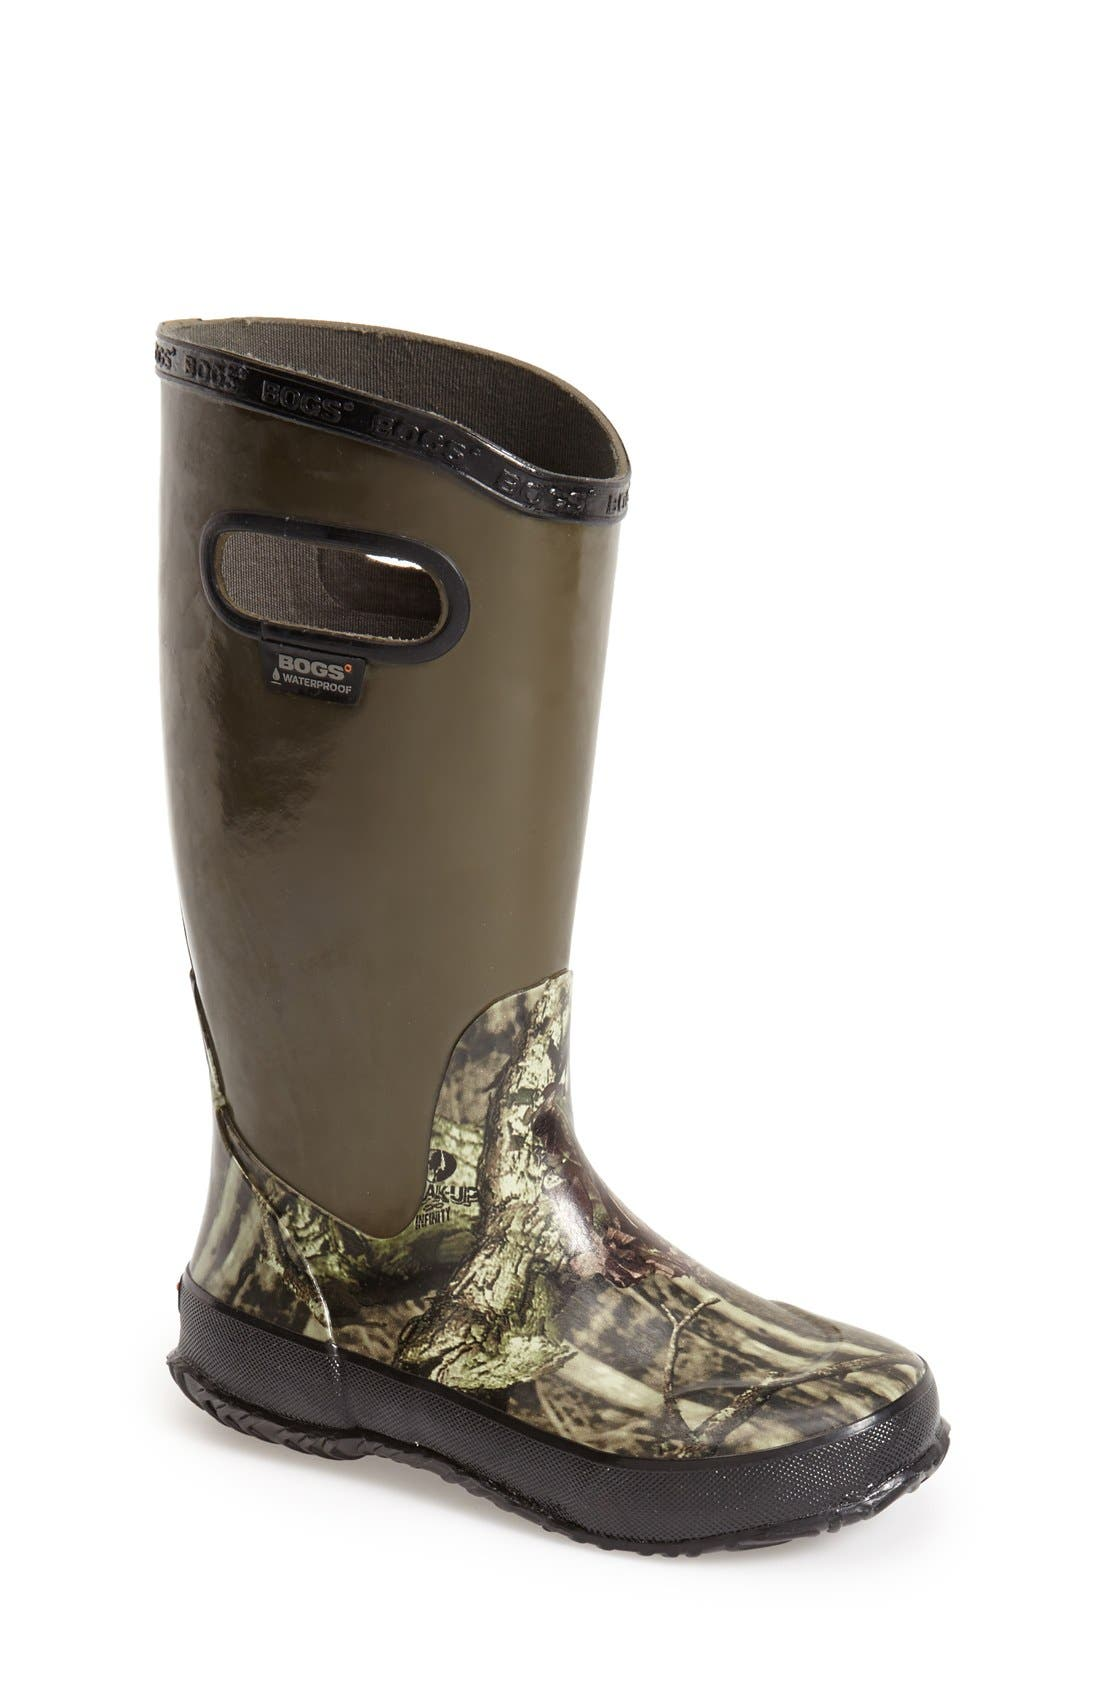 Bogs Hunting Waterproof Rubber Rain Boot (Walker, Toddler, Little Kid & Big Kid)